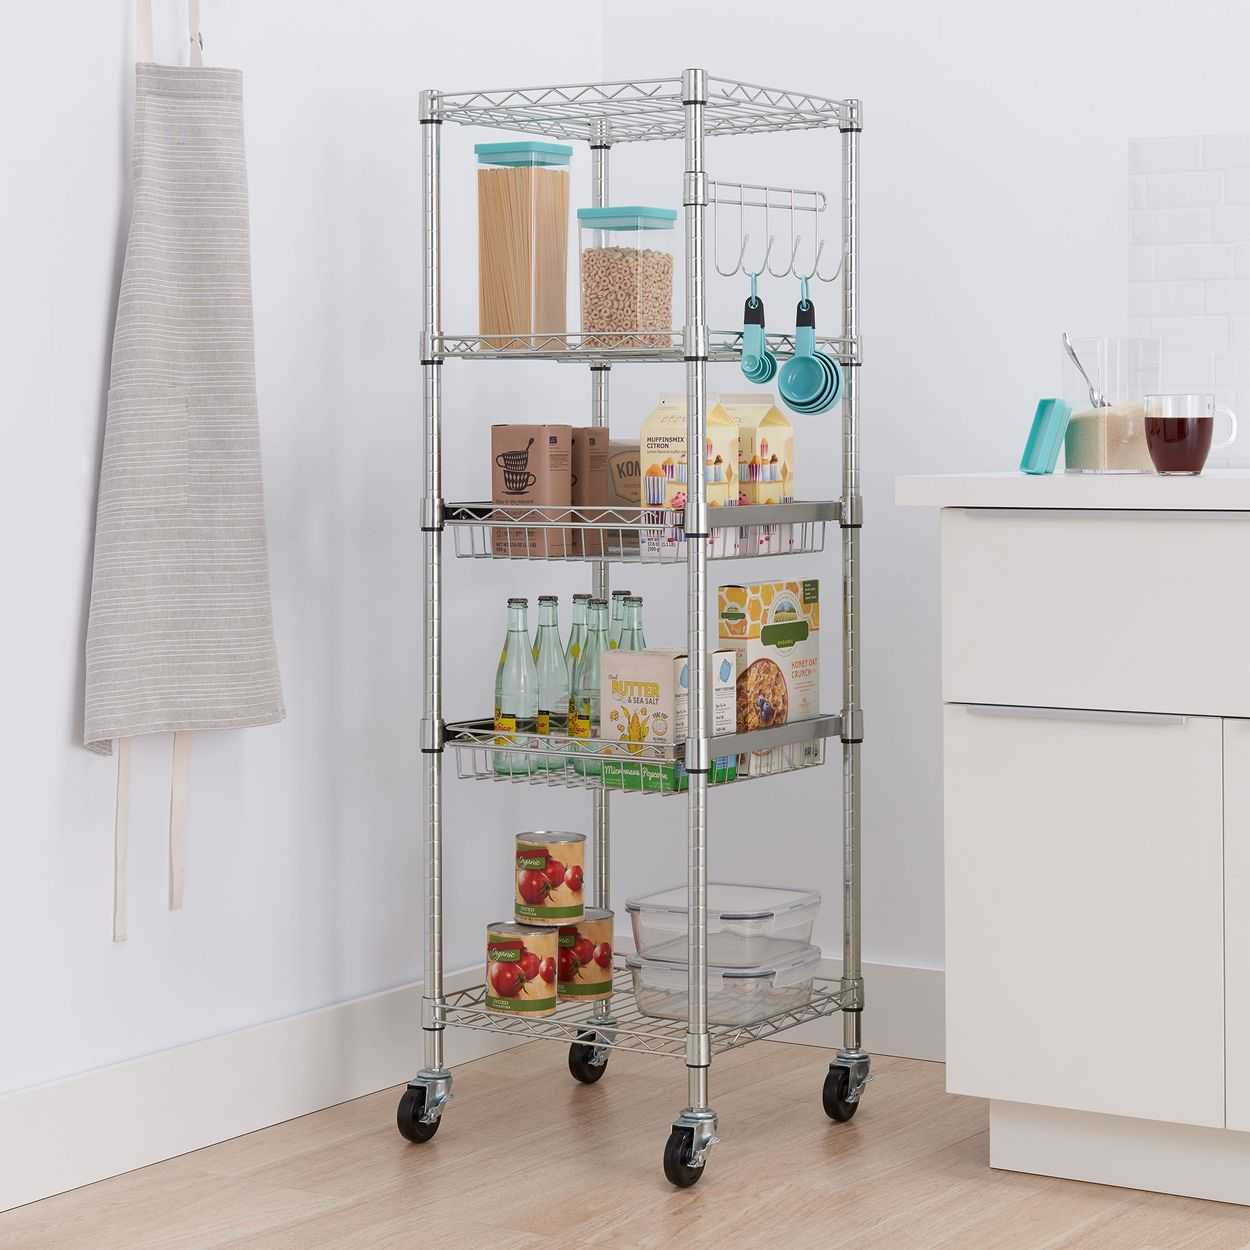 TRINITY square rack placed between the walls and counters